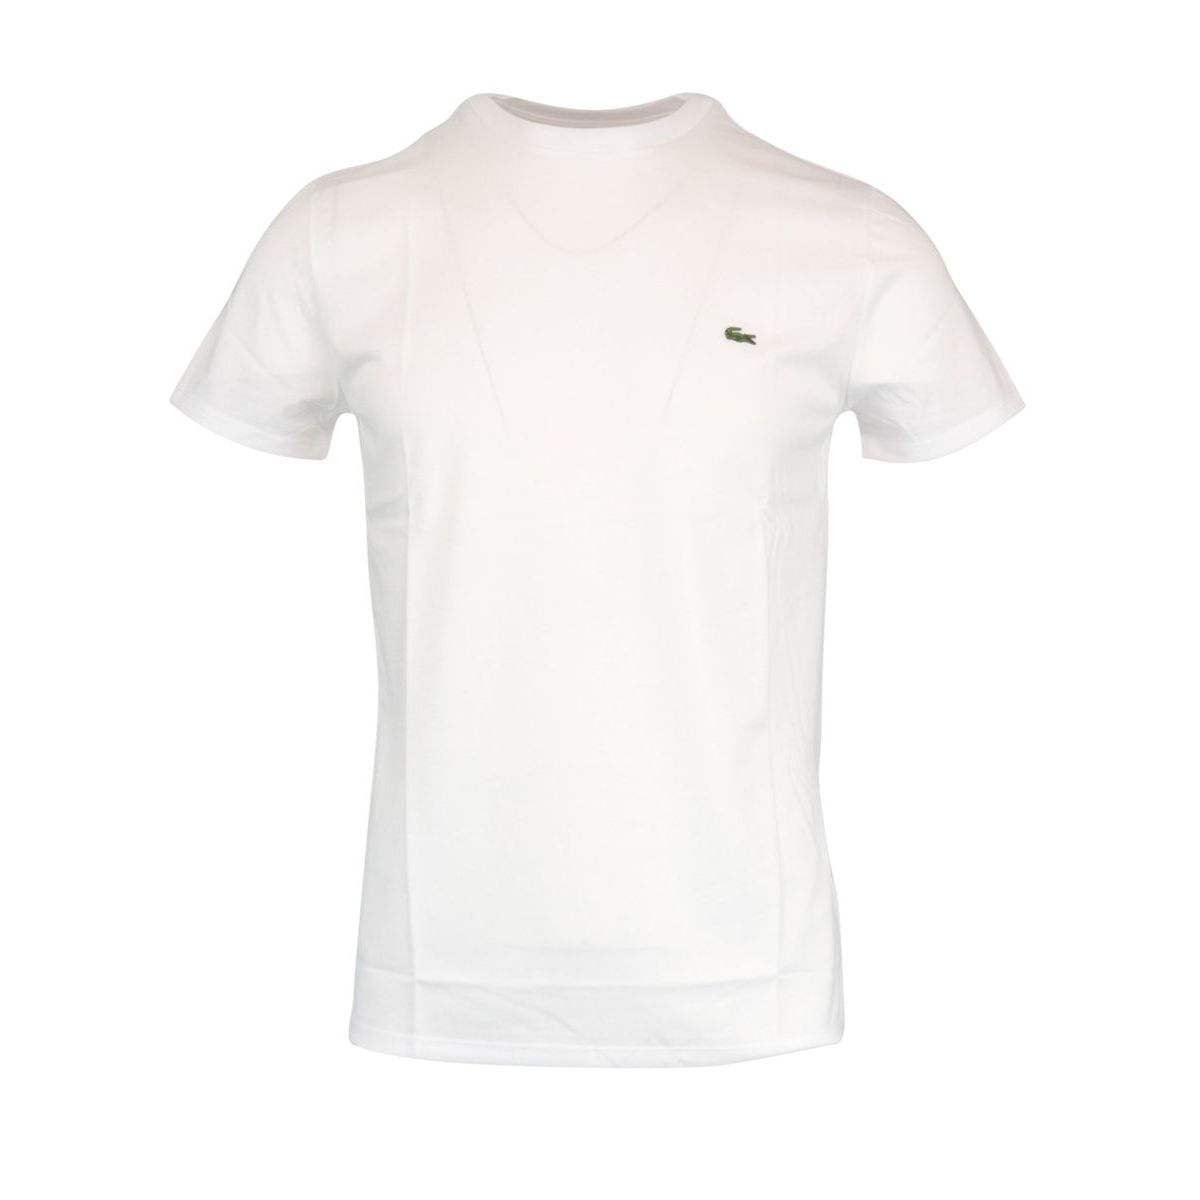 Regular cotton T-shirt with small logo applied White Lacoste